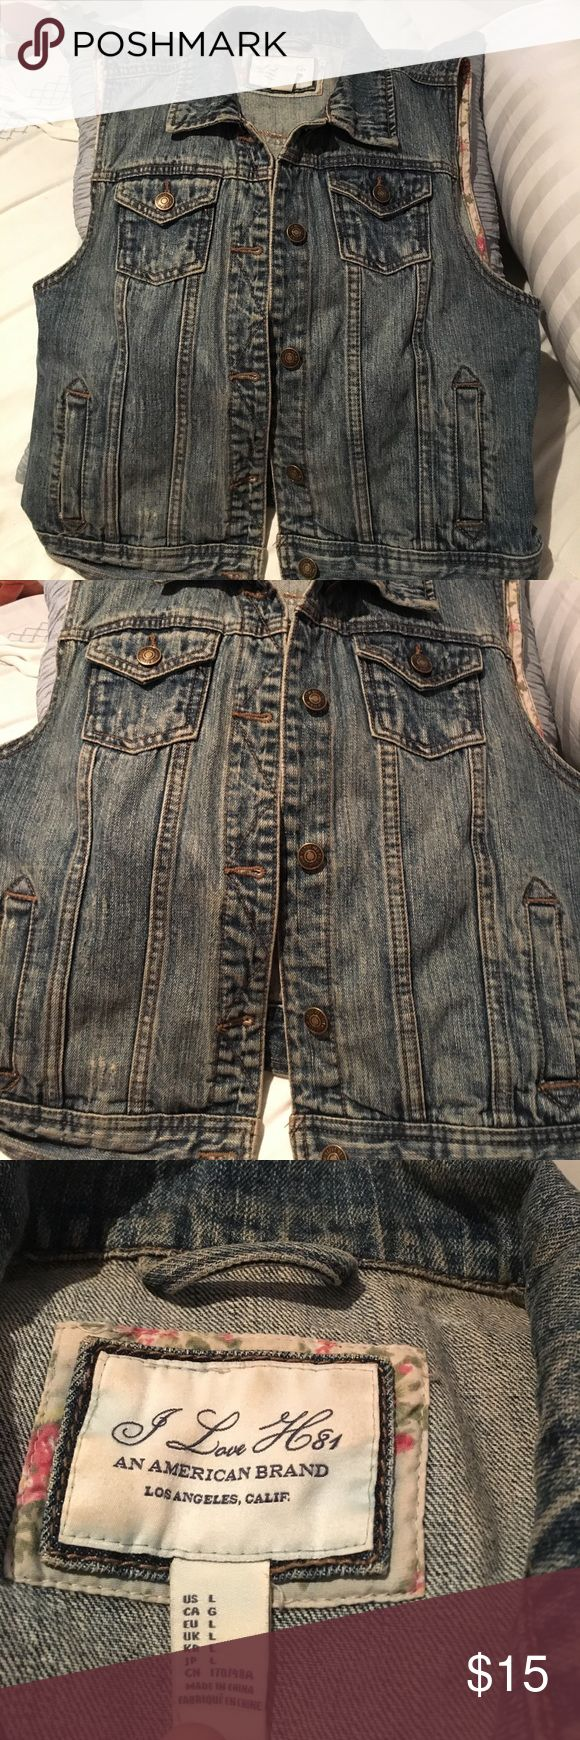 Sleeveless jean jacket Worn handful of times but like new no tares or stains bought from forever 21 Forever 21 Jackets & Coats Jean Jackets